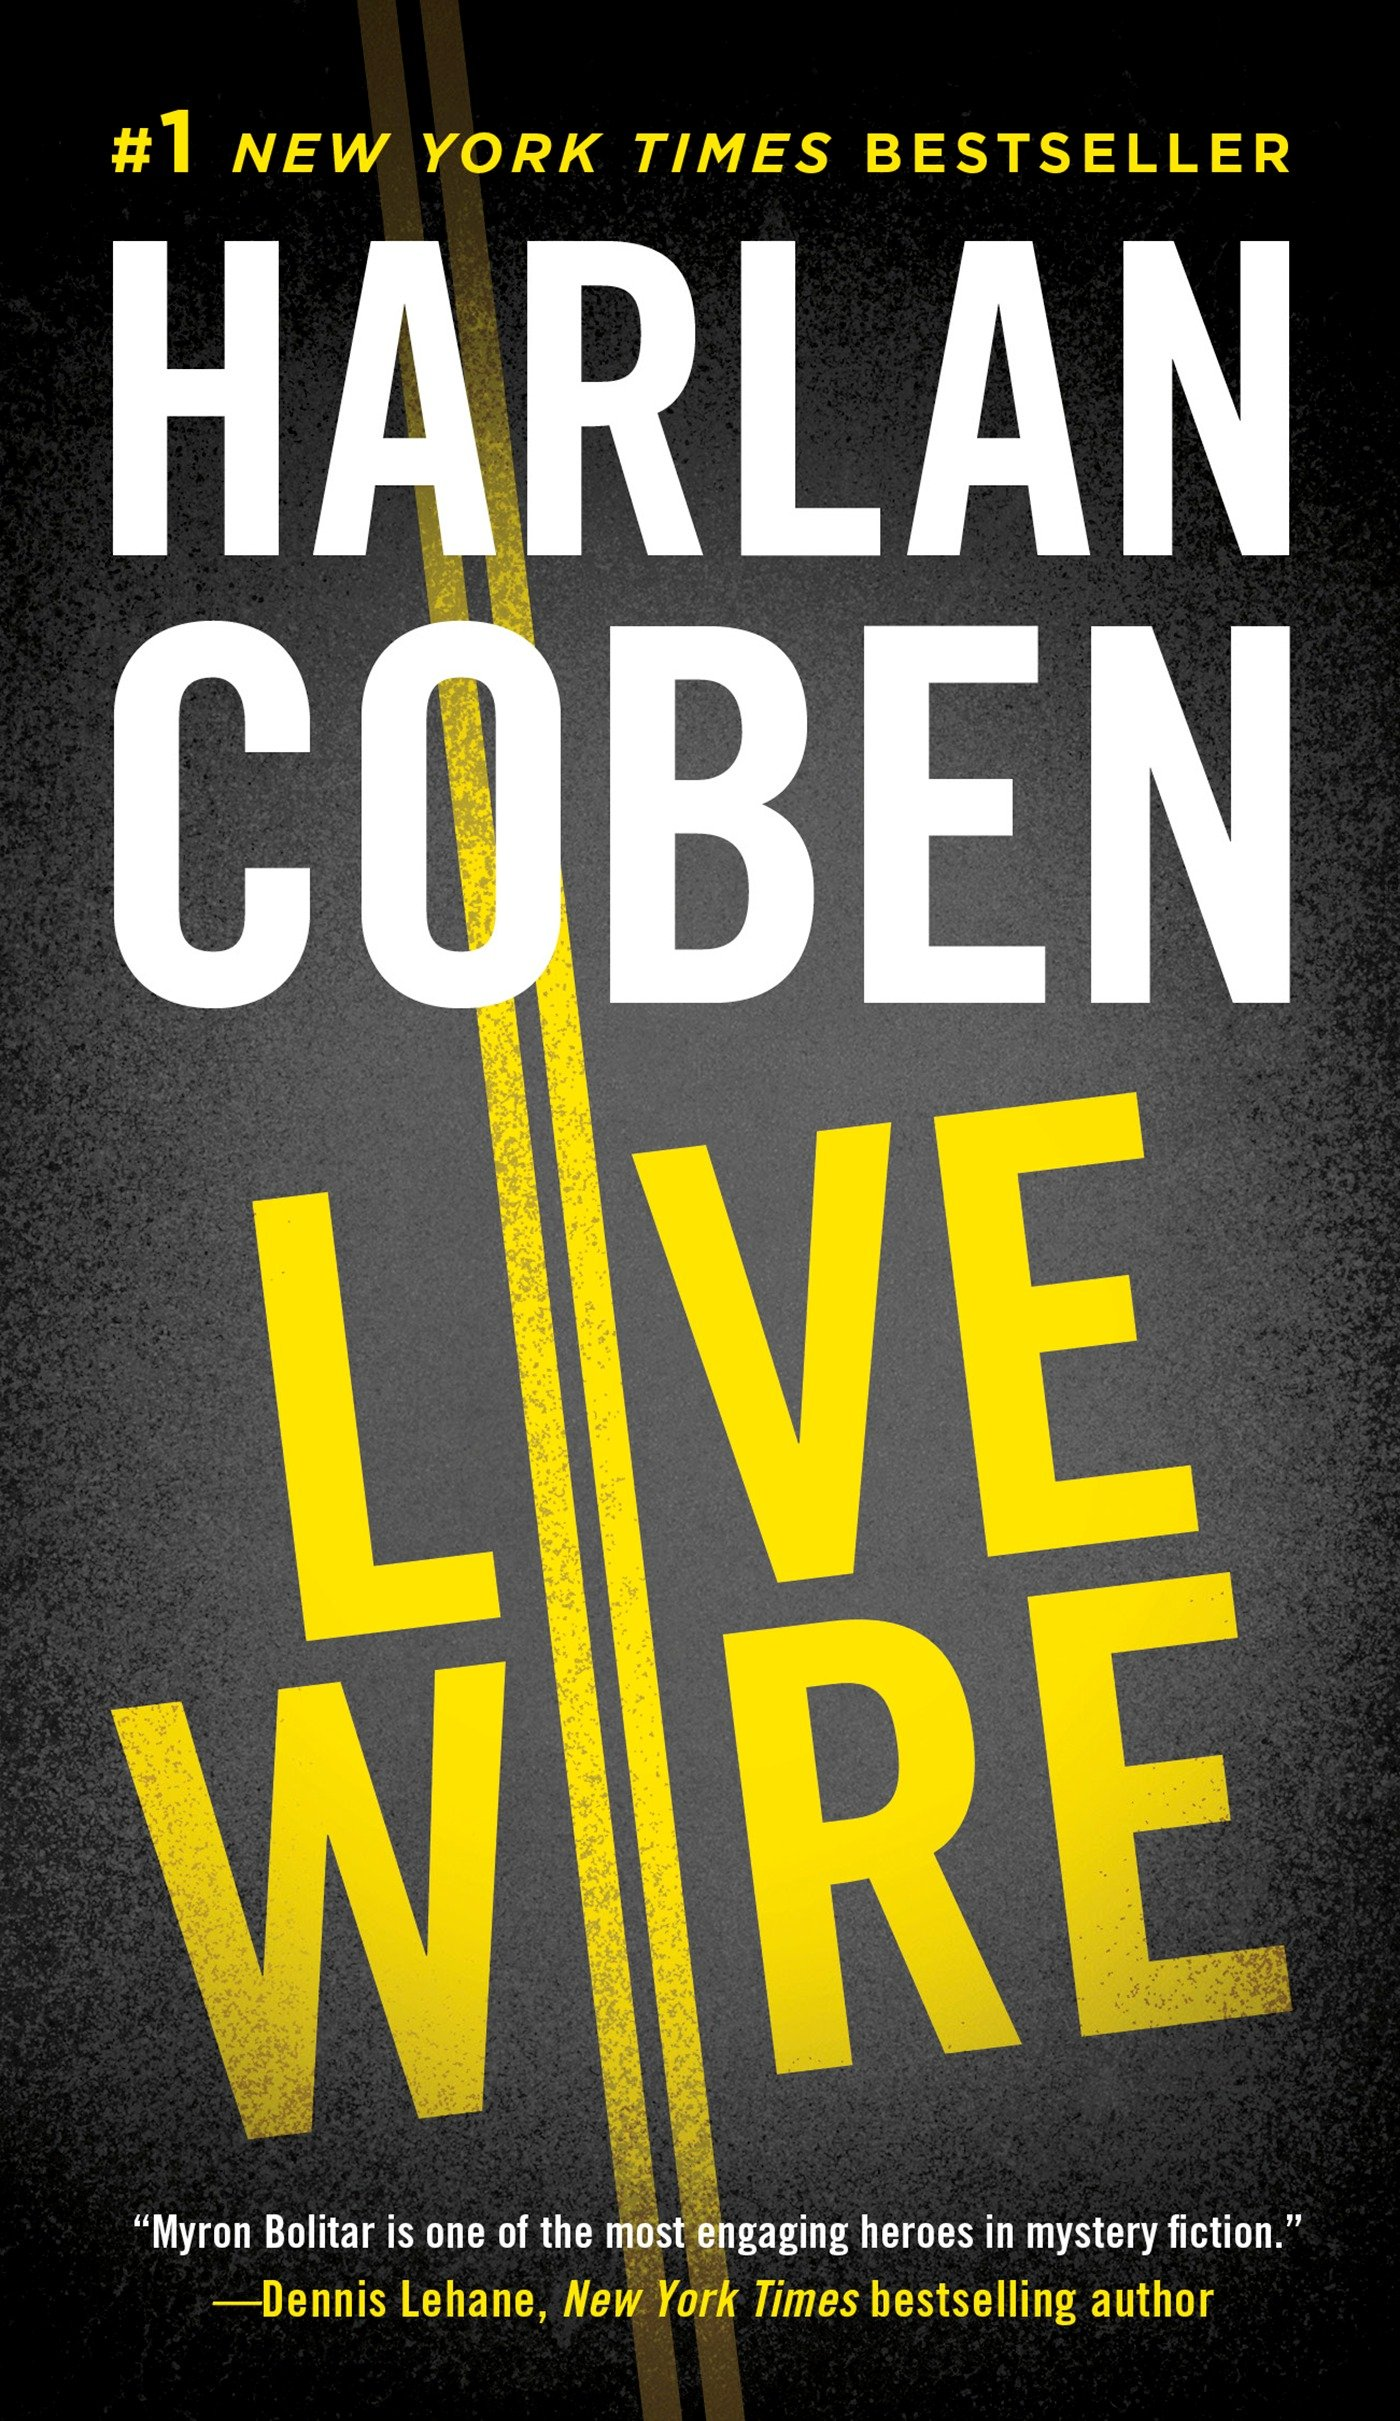 Live wire cover image